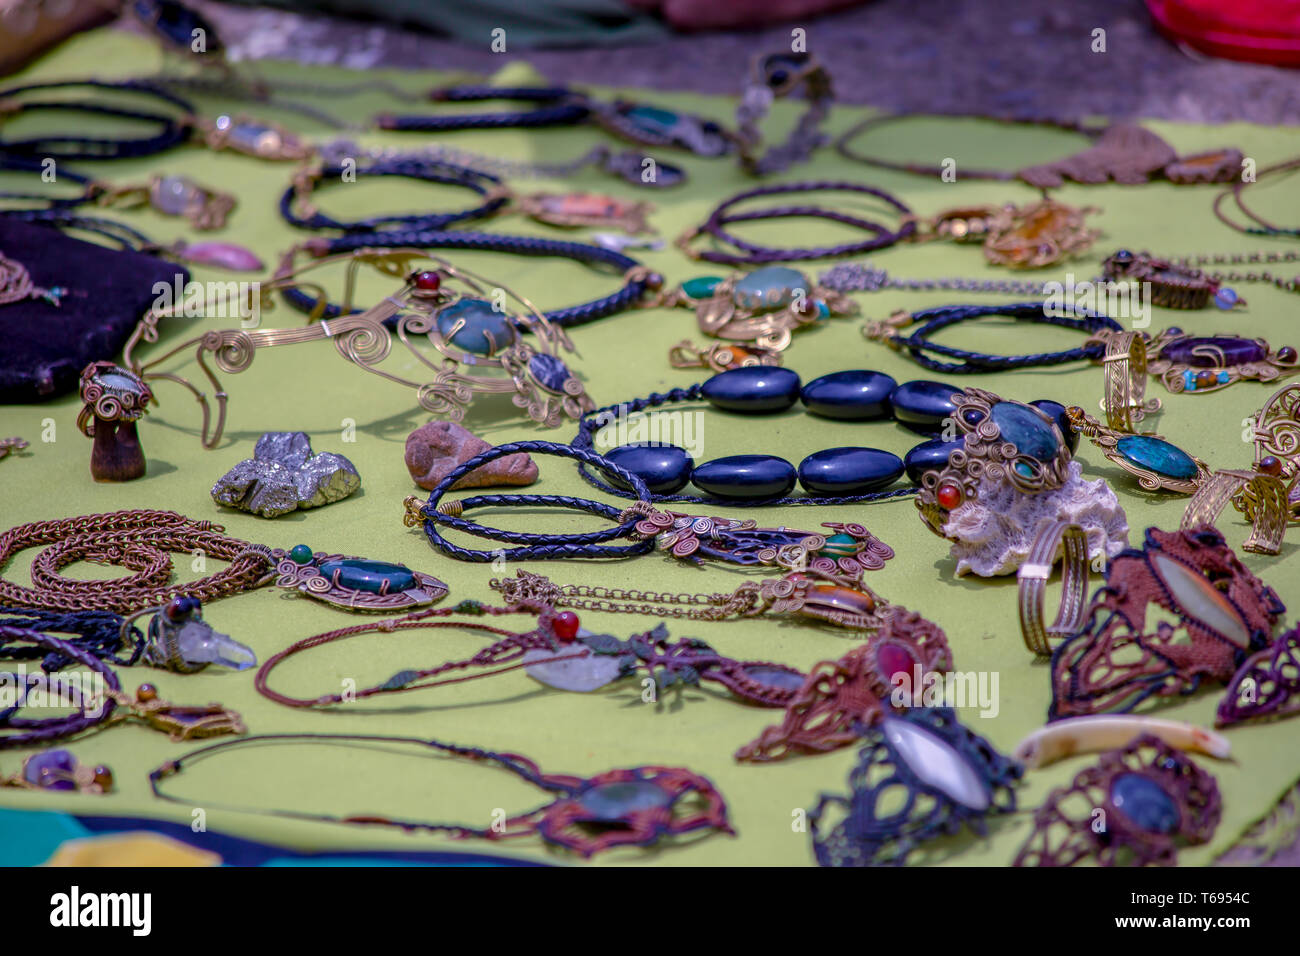 Handcrafted jewelery on a mat at the traditional local market of the colonial town of Villa de Leyva, in the Andean mountains of central Colombia. - Stock Image